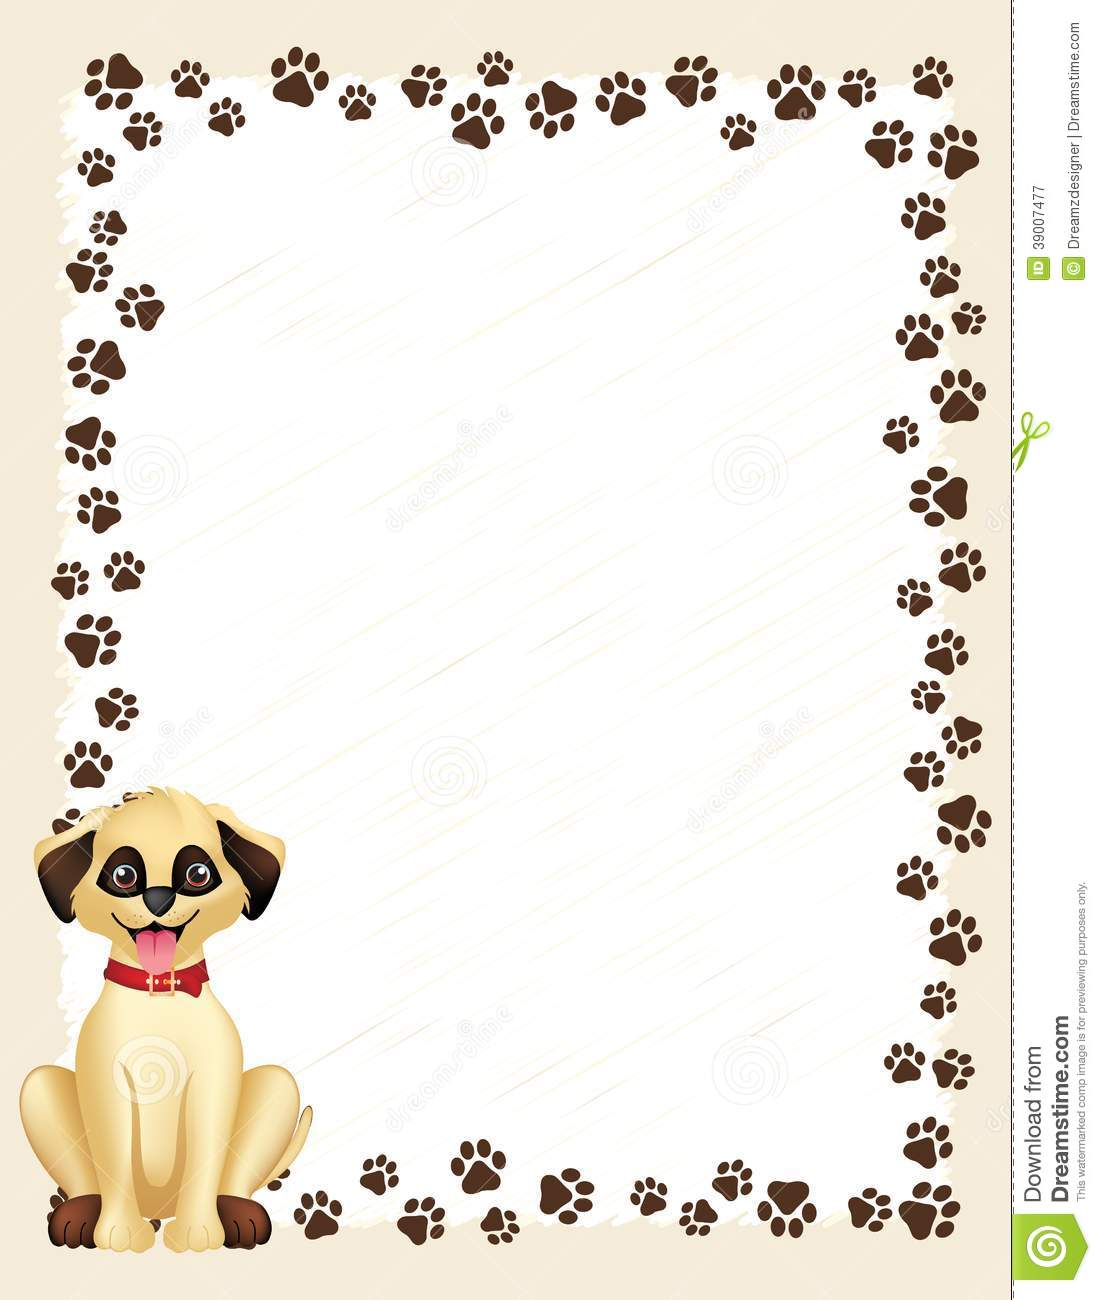 Dog paw prints border / frame on white background and cute dog.